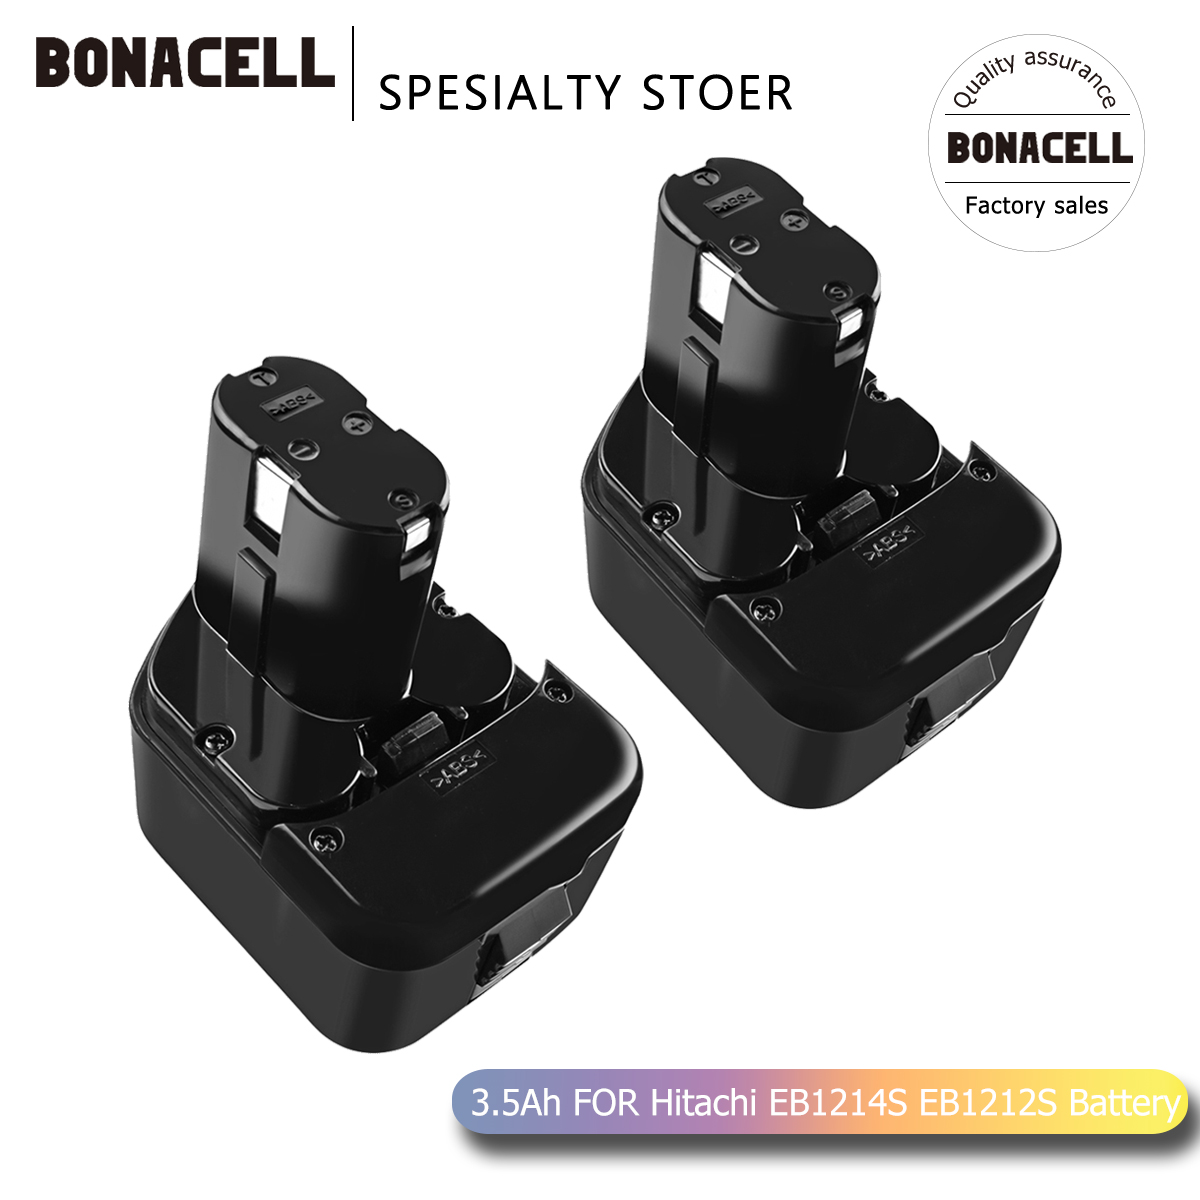 Bonacell Battery Eb1220bl DS12DVF3 for Hitachi Eb1212s/Eb1220hs/324360/.. 12V title=